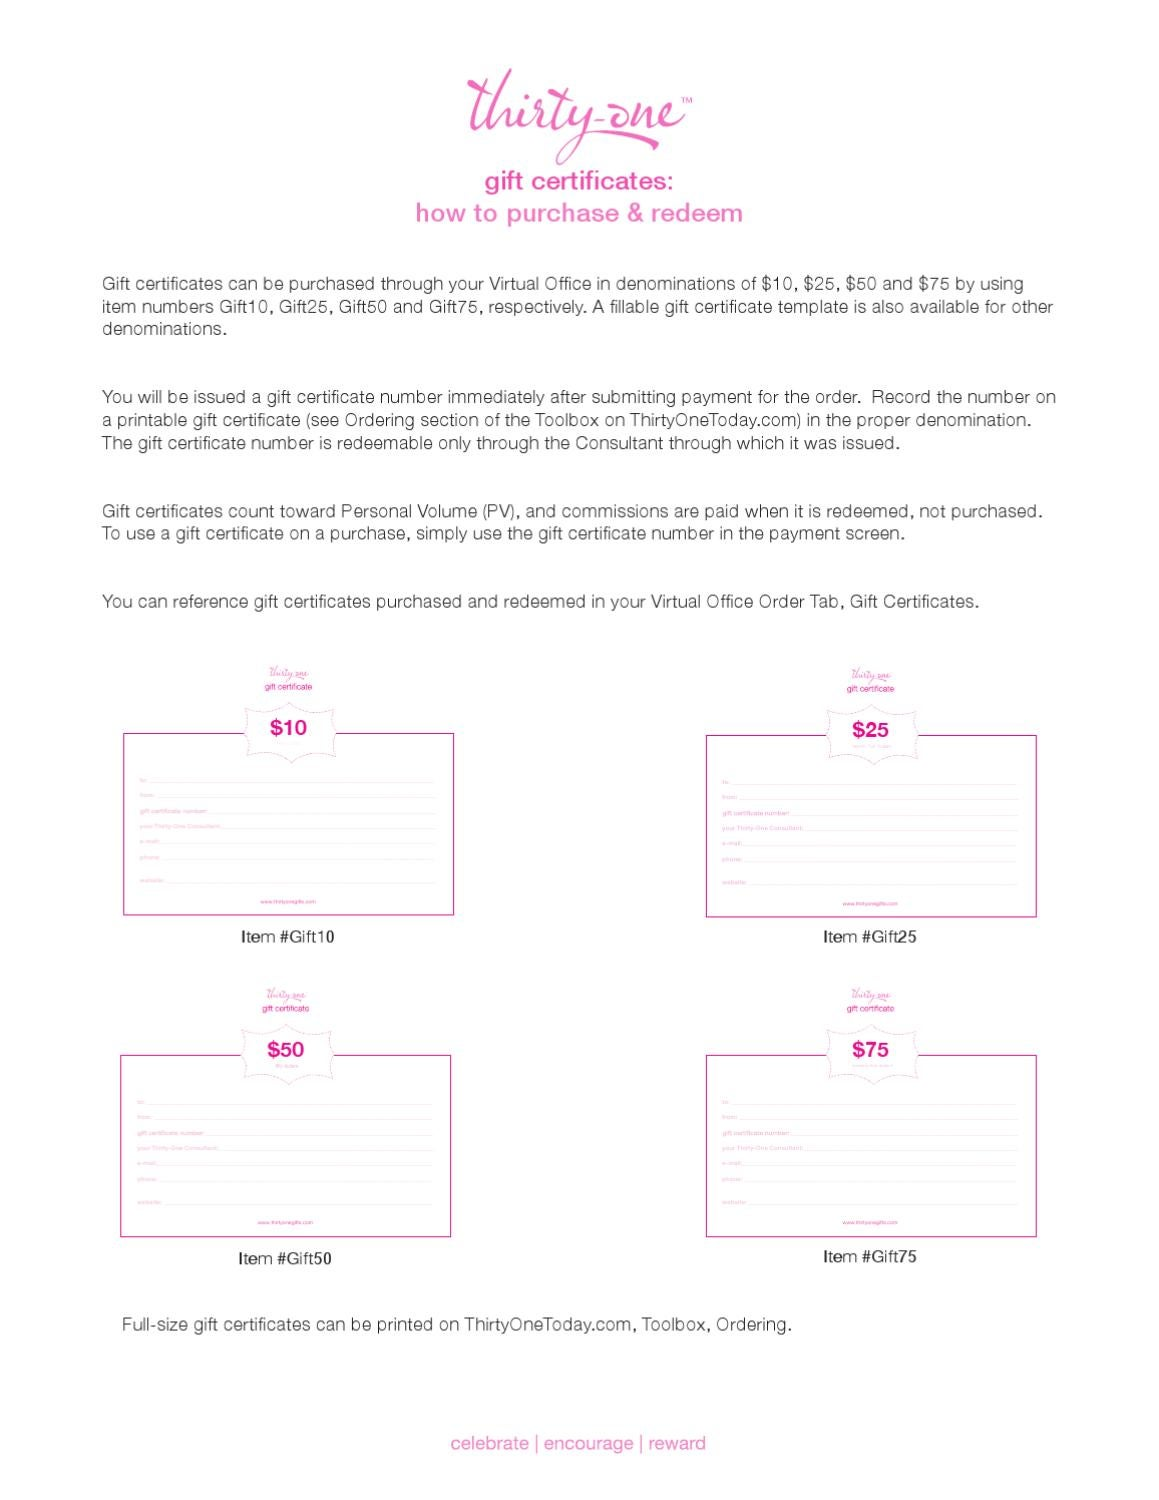 How to purchase and redeem gift certs by gina spandet issuu 1betcityfo Image collections